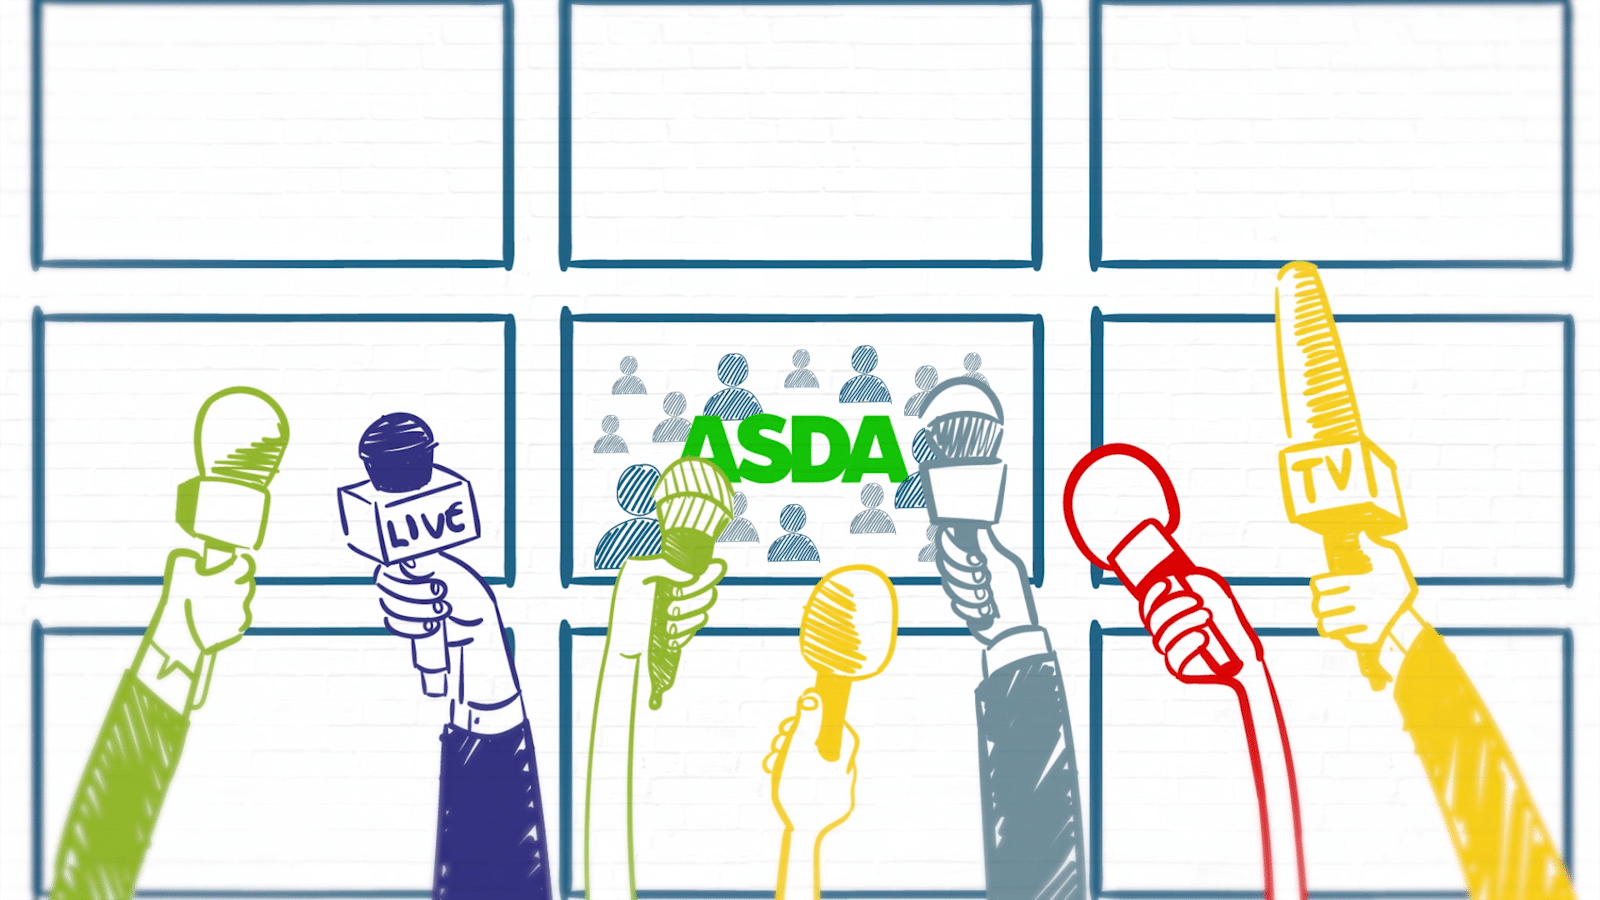 Asda Press Cartoon Visual